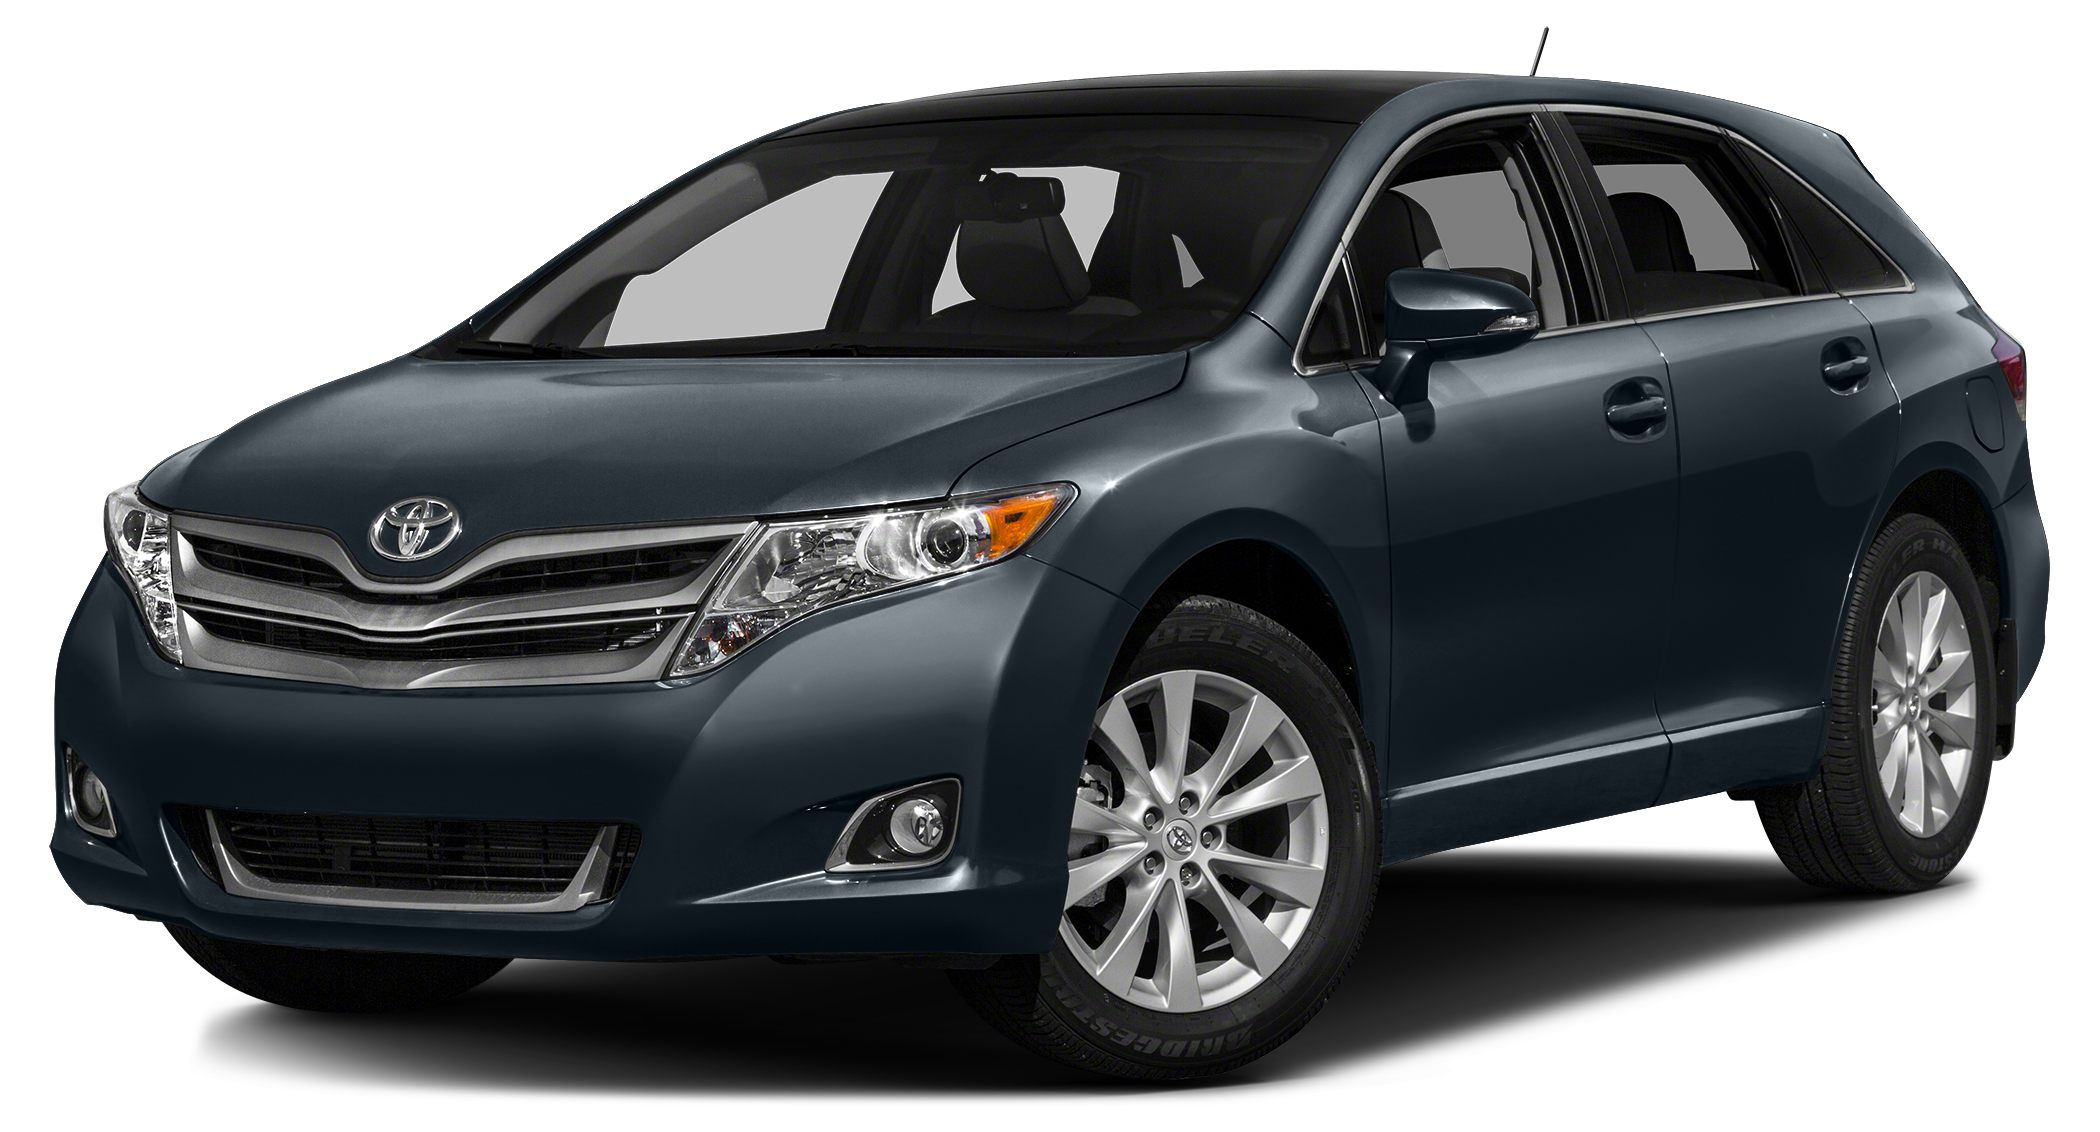 2015 Toyota Venza LE EPA 26 MPG Hwy20 MPG City CARFAX 1-Owner GREAT MILES 18236 LE trim Blue